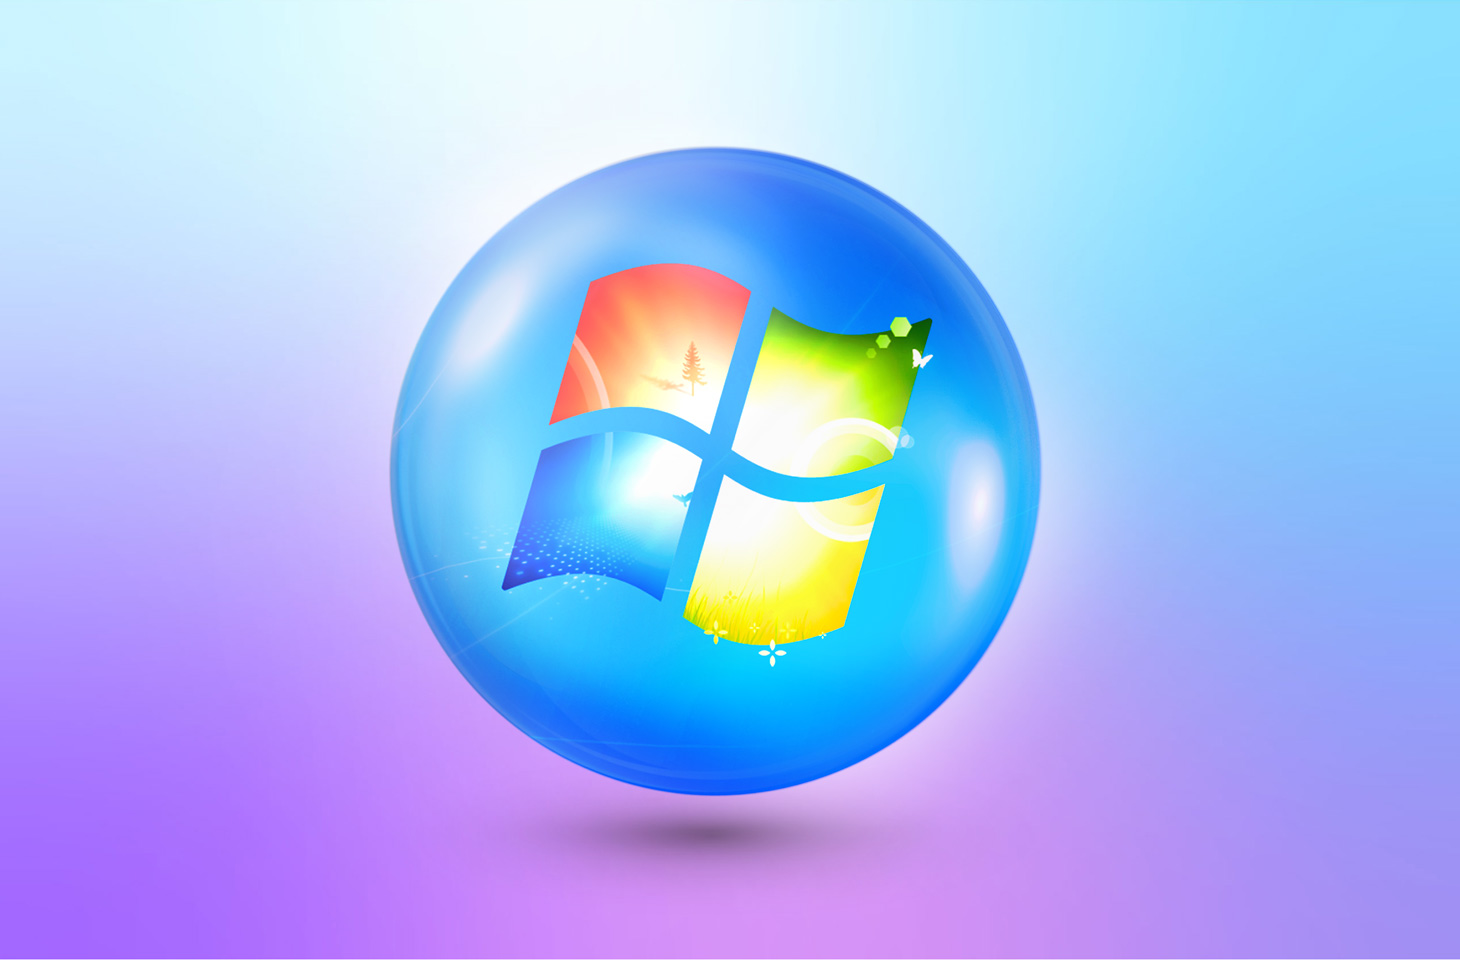 Microsoft discontinues support for Windows 7: What users need to do |  Kaspersky official blog